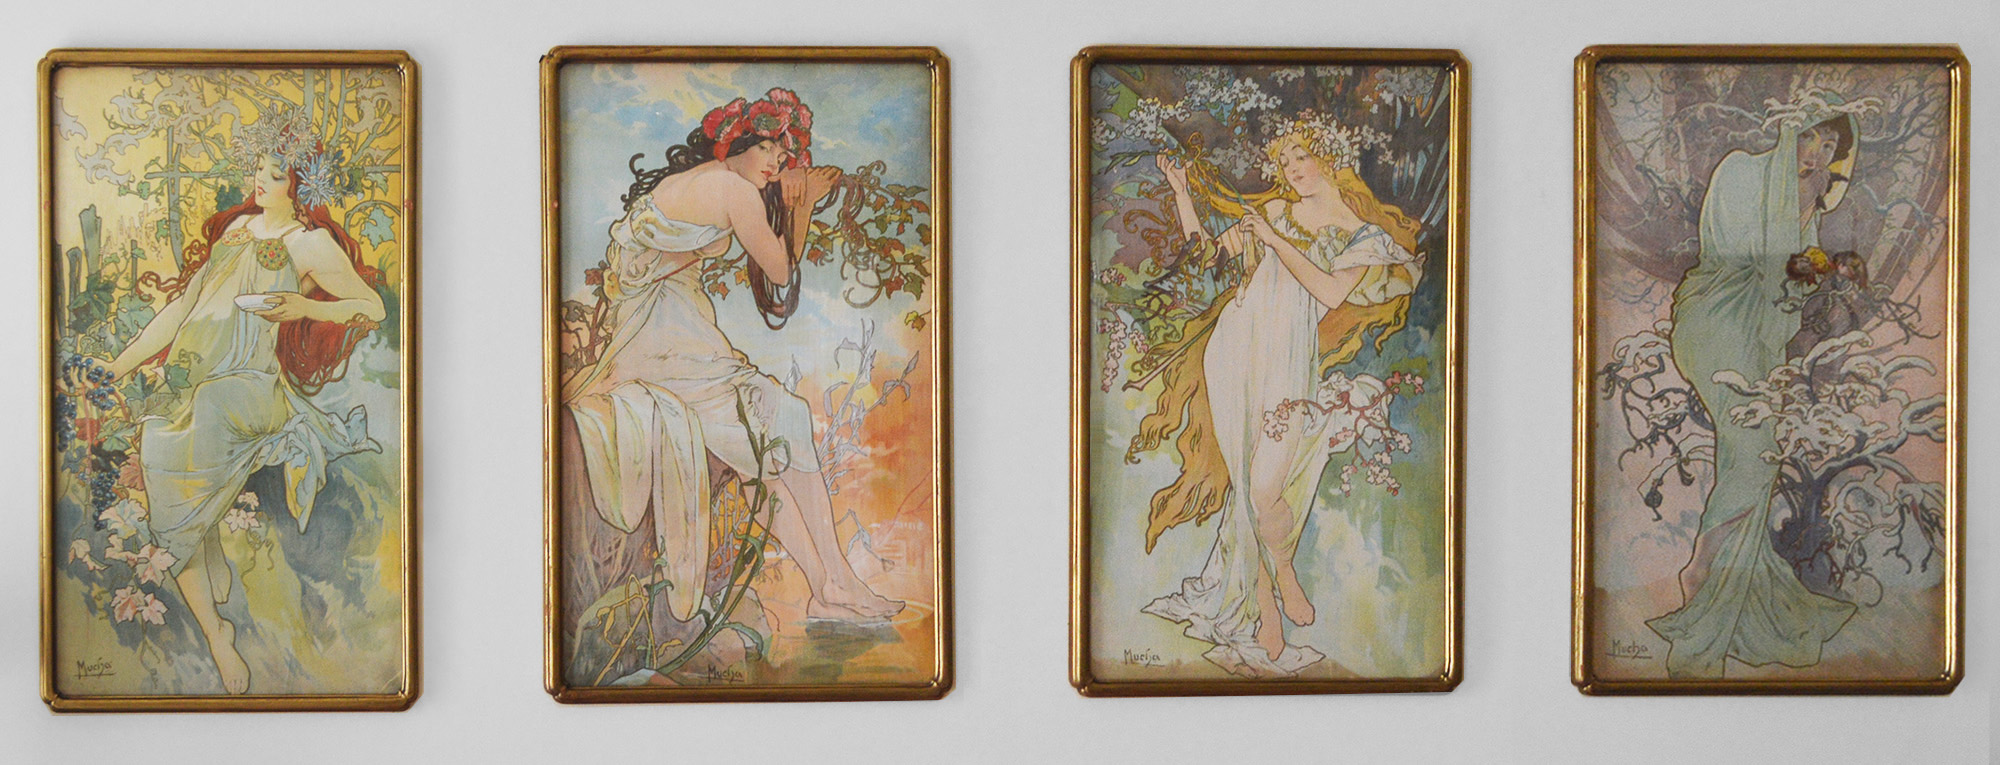 Set of four Art Nouveau period lithographs on fabric